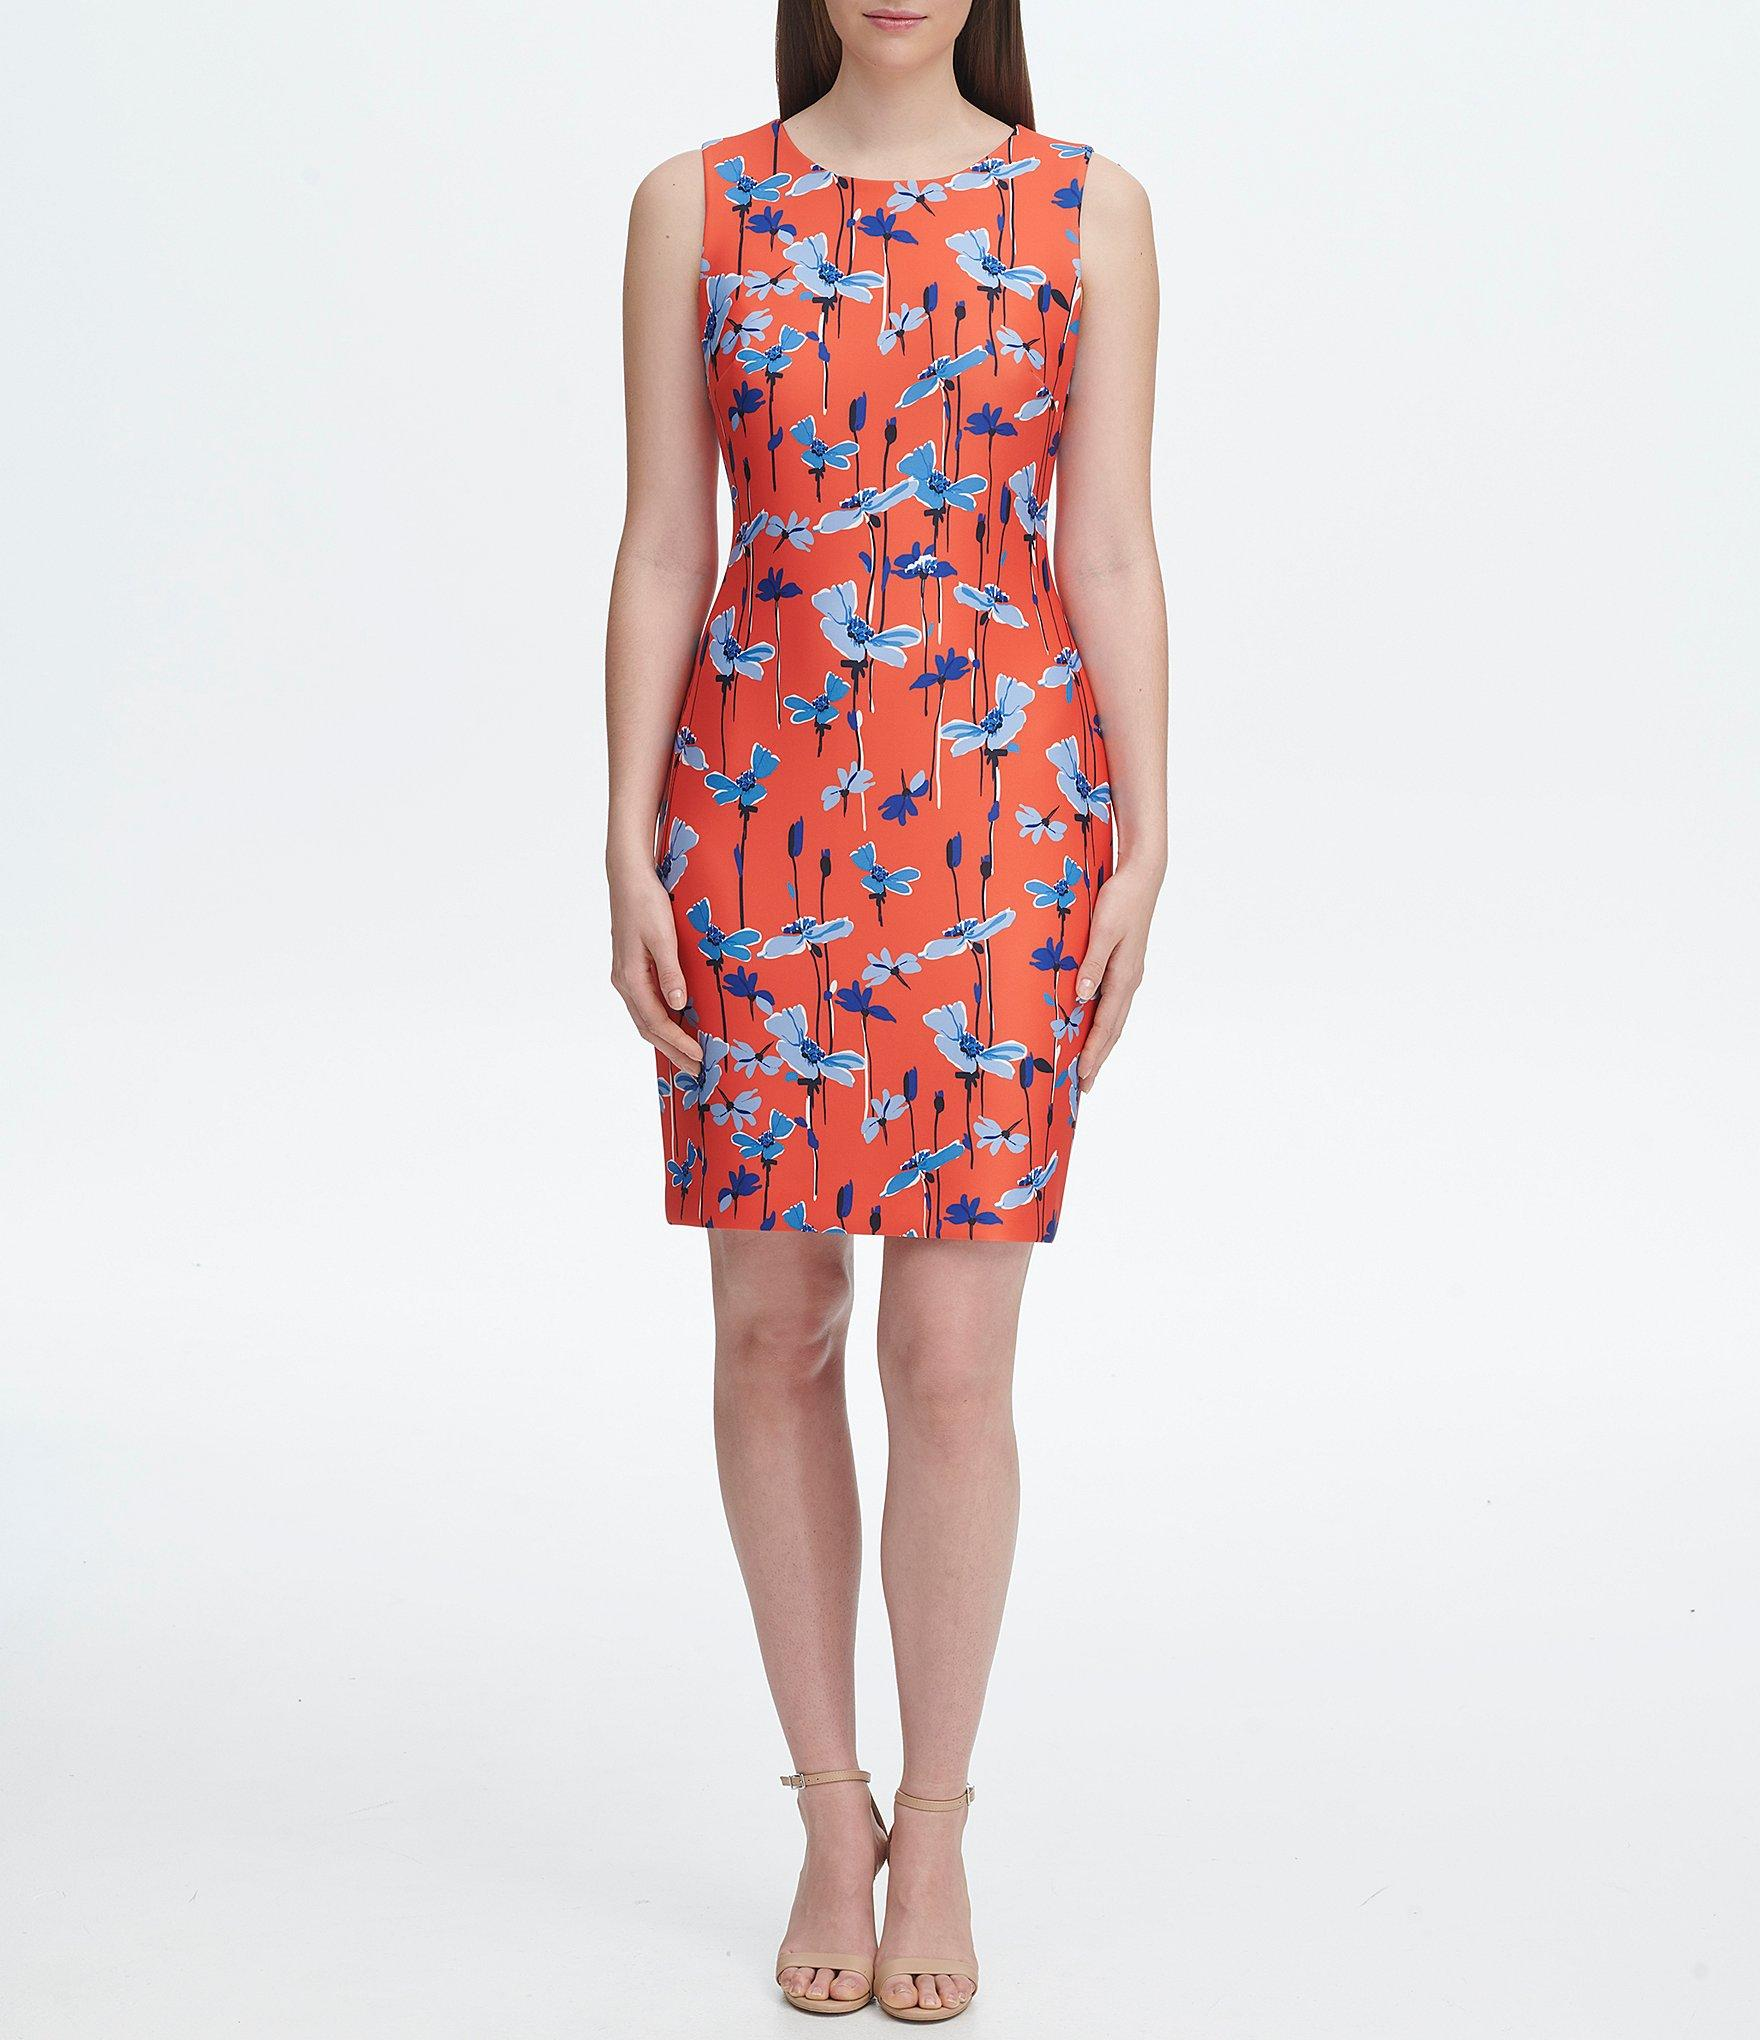 d4460a71a Lyst - Tommy Hilfiger Scuba Floral Sleeveless Sheath Dress in Red